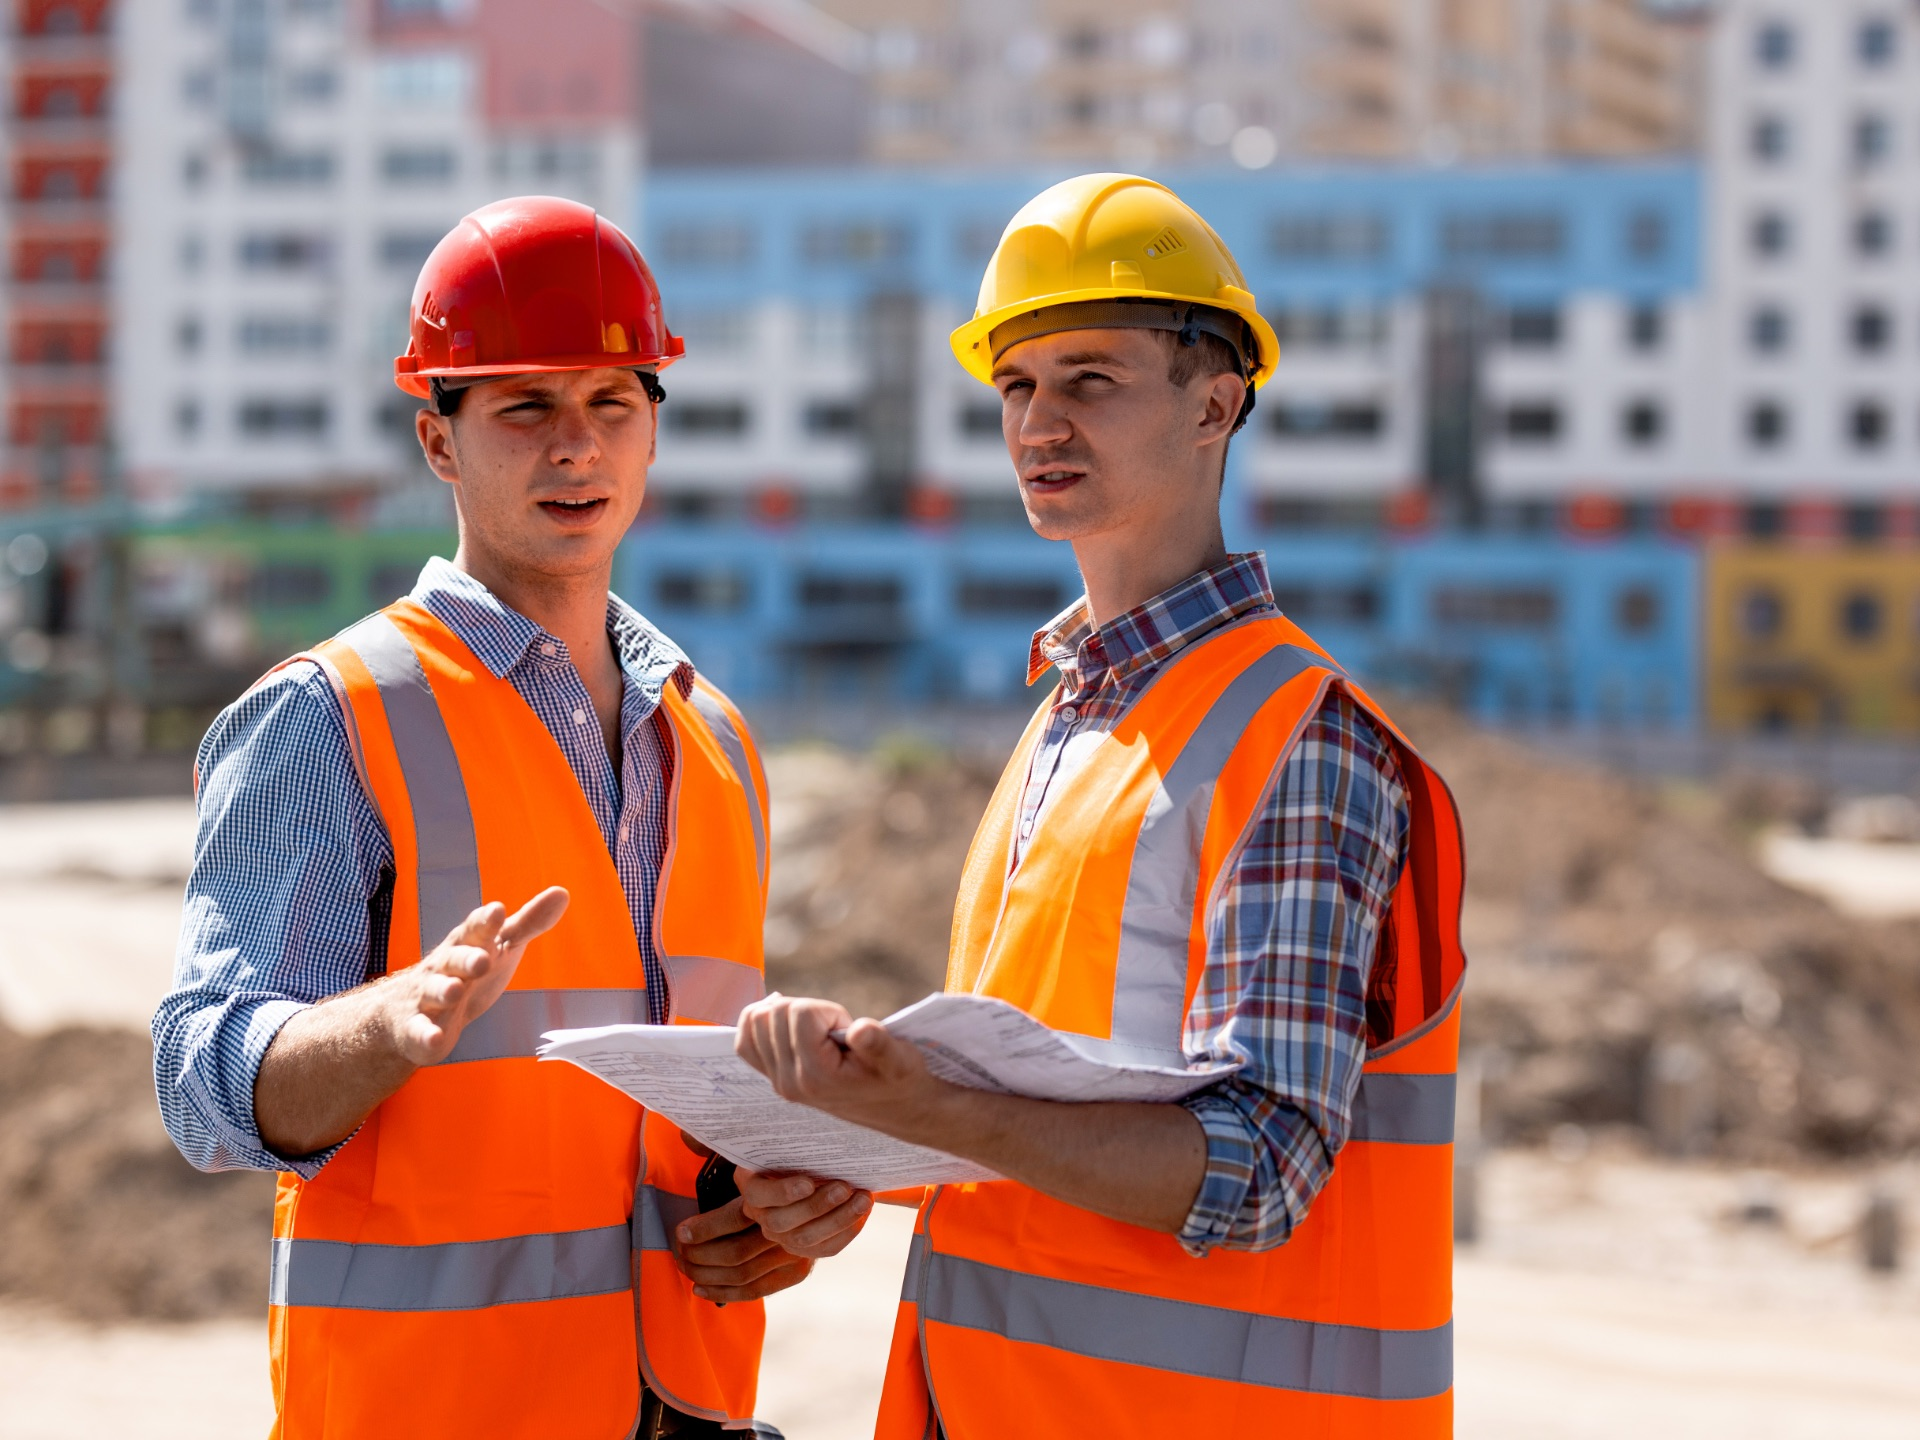 Site Sustainability Simplified - ProRisk Safety Management Limited